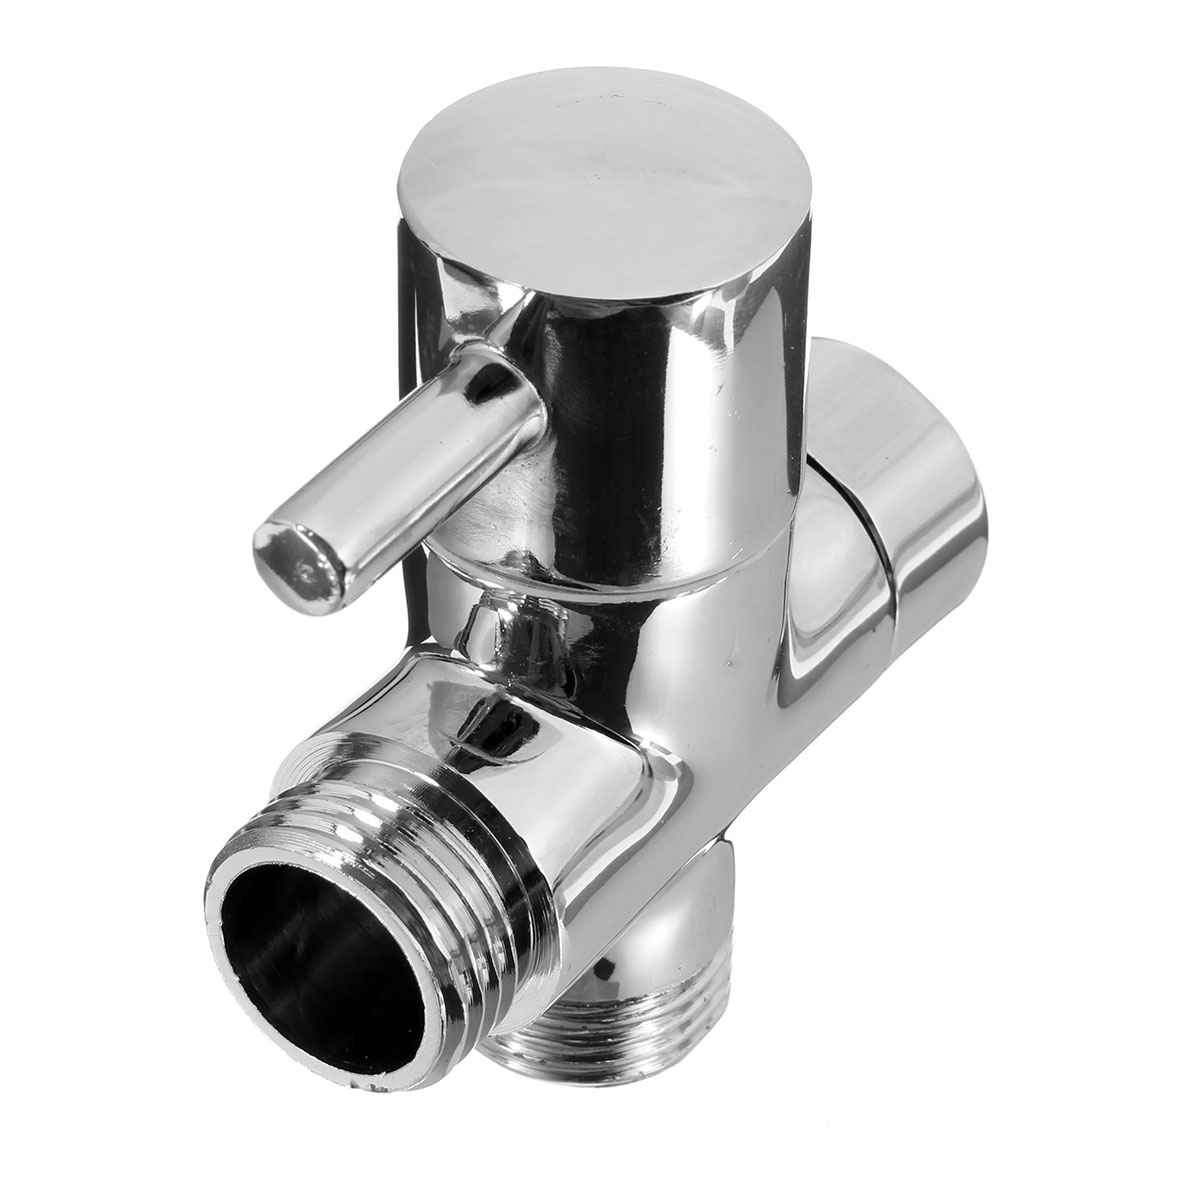 components uk inch way ips diy amazon faucet ignpion valve faucets splitter handshower showering for shower dp flow arm brass co control tools diverter